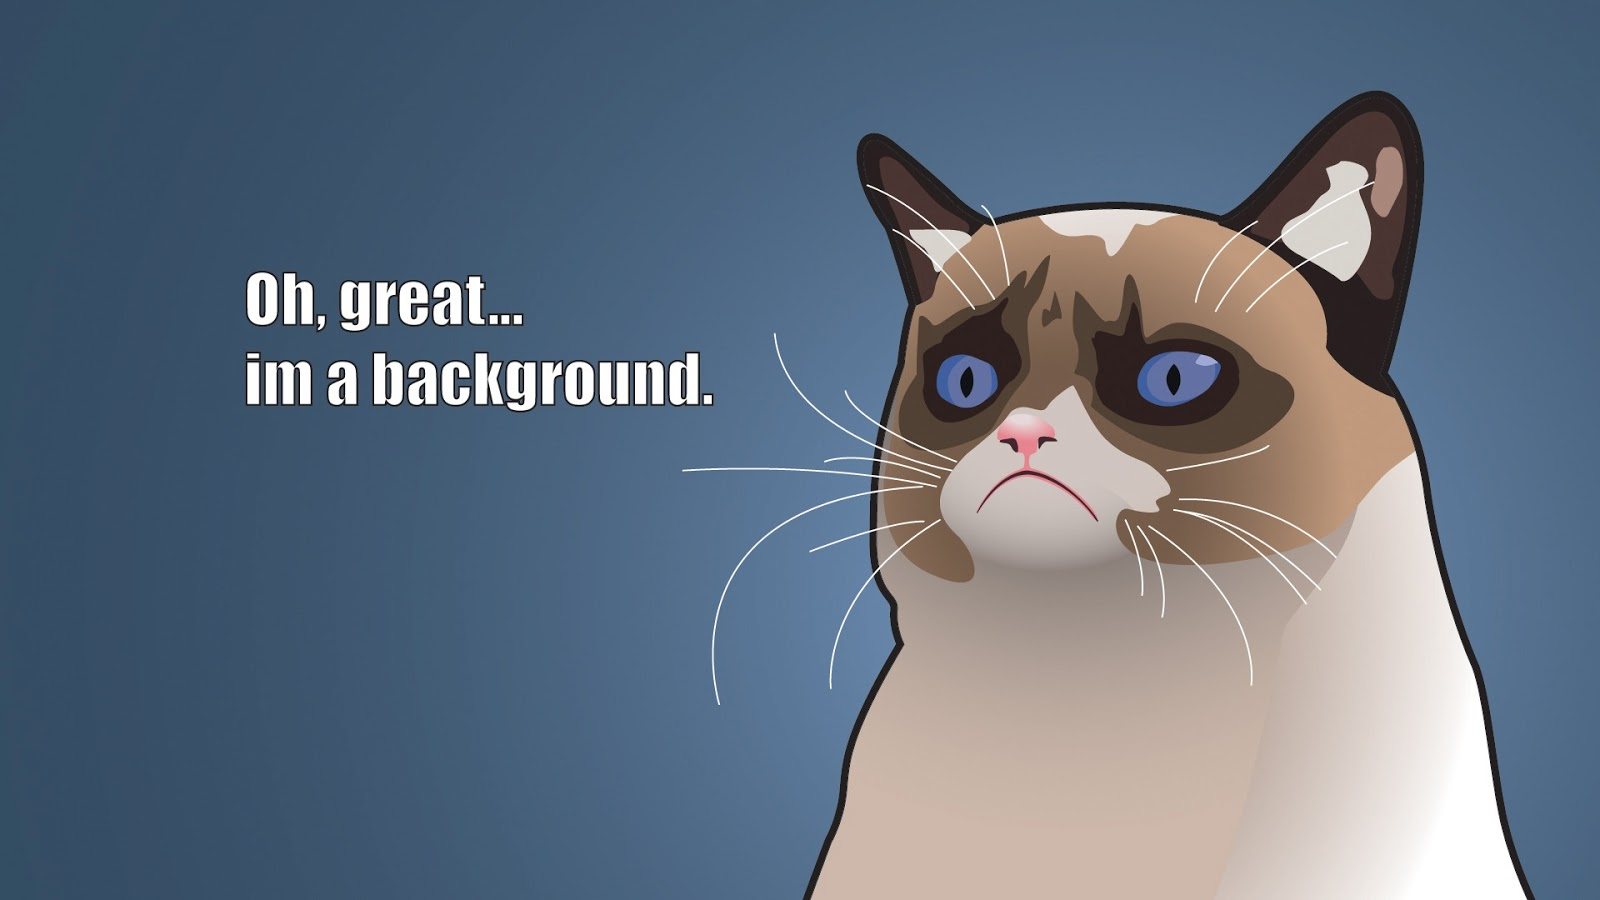 Funny Cartoon Cat 3 Background Funnypicture Org